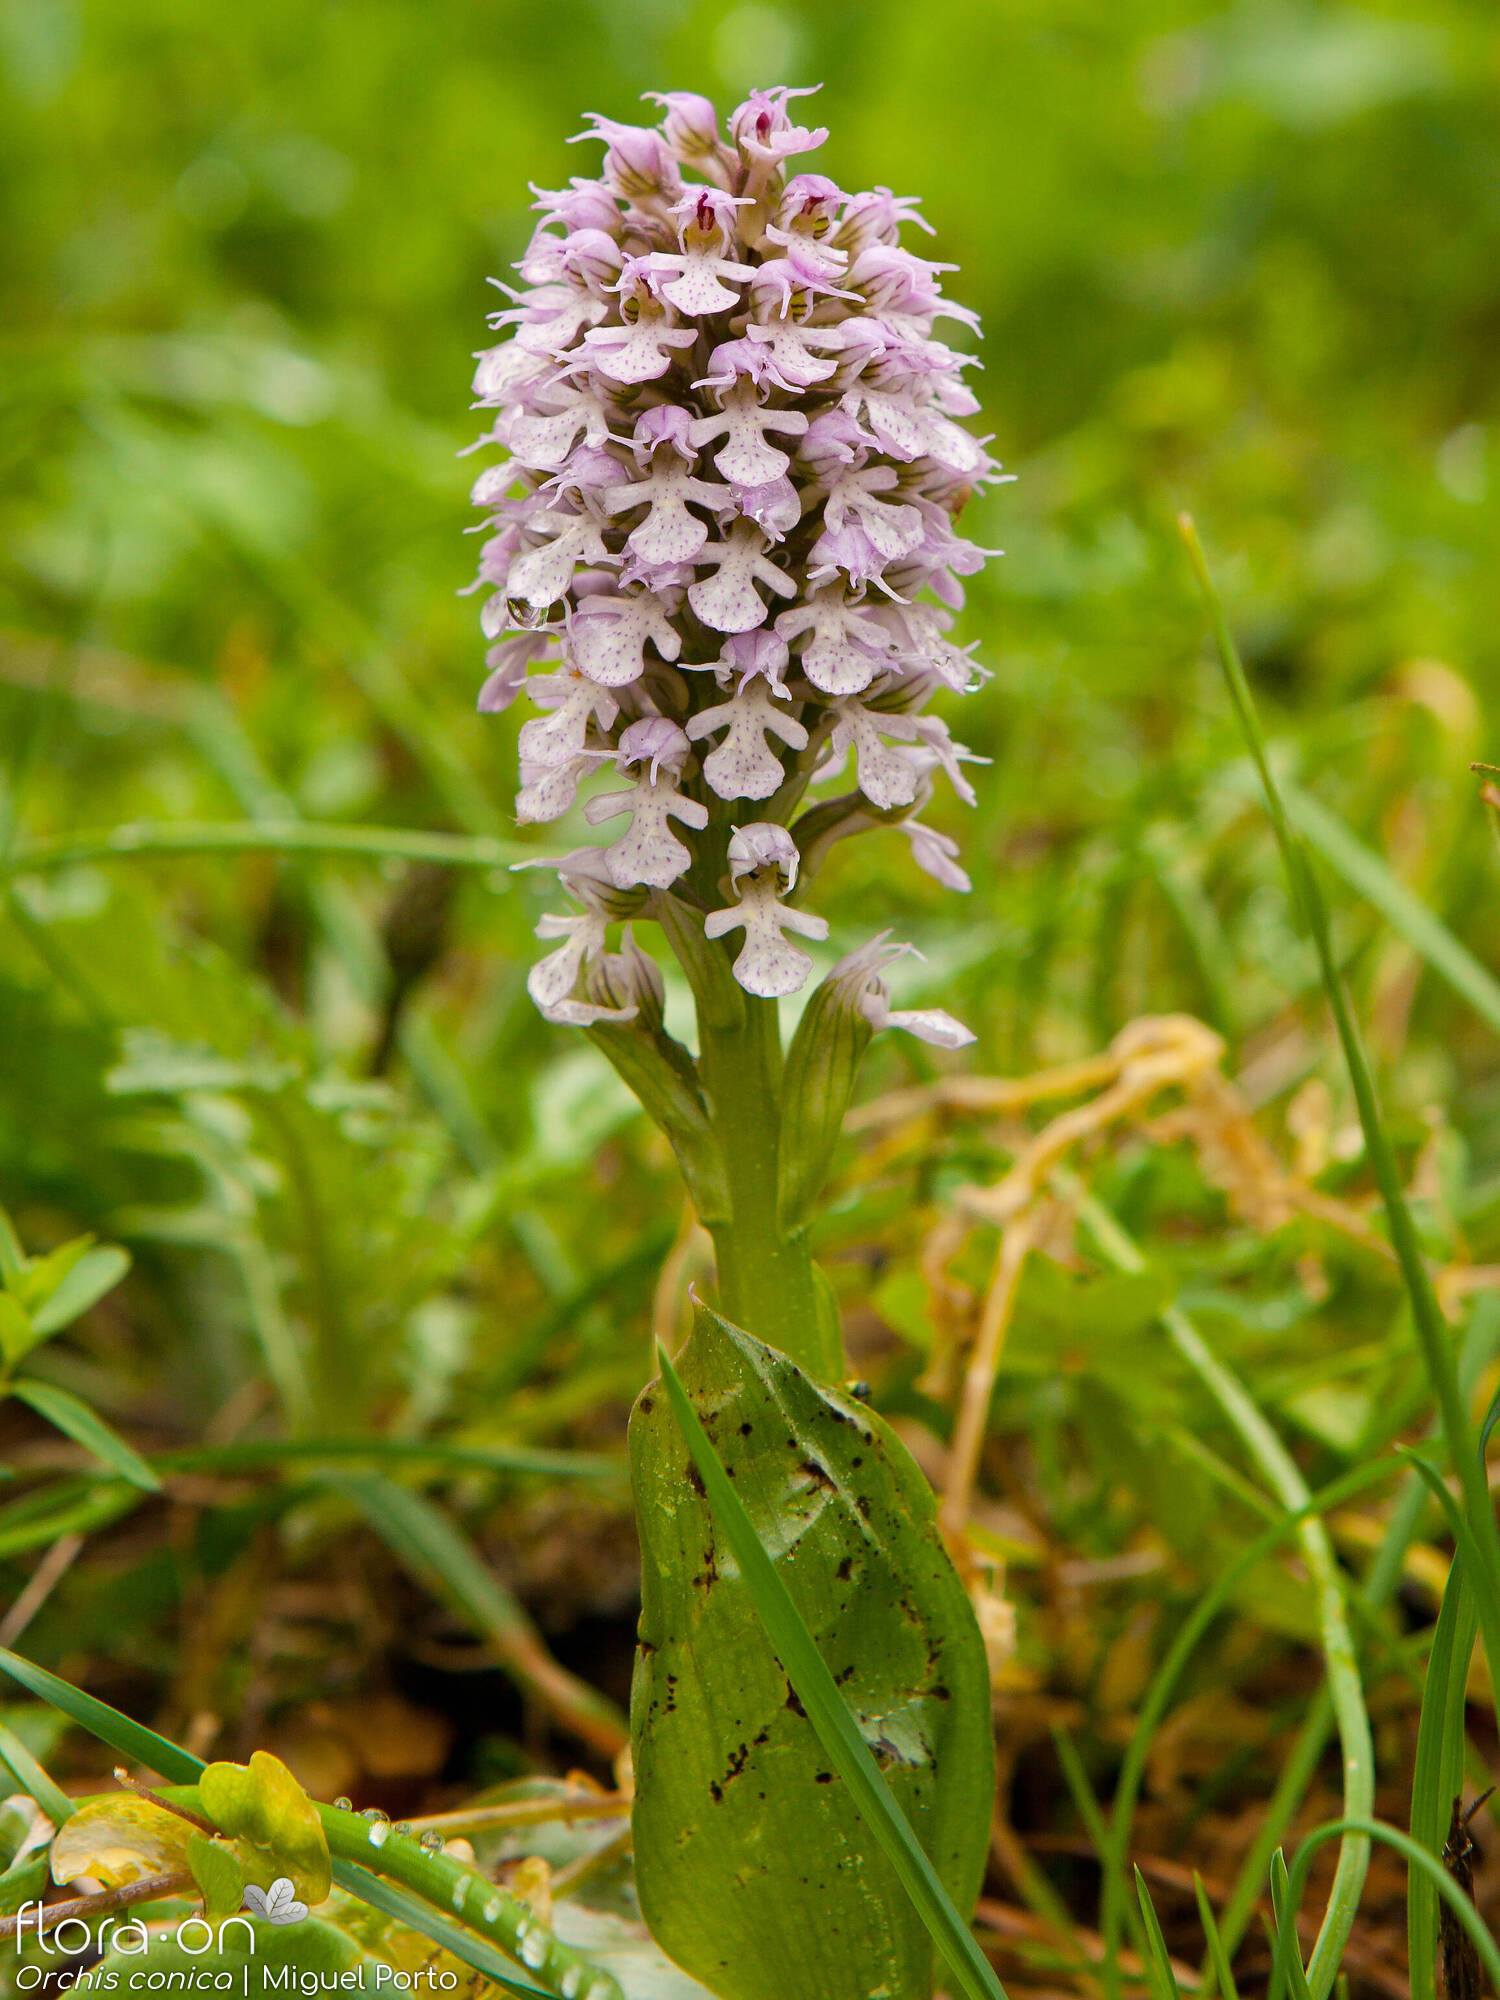 Orchis conica - Hábito | Miguel Porto; CC BY-NC 4.0